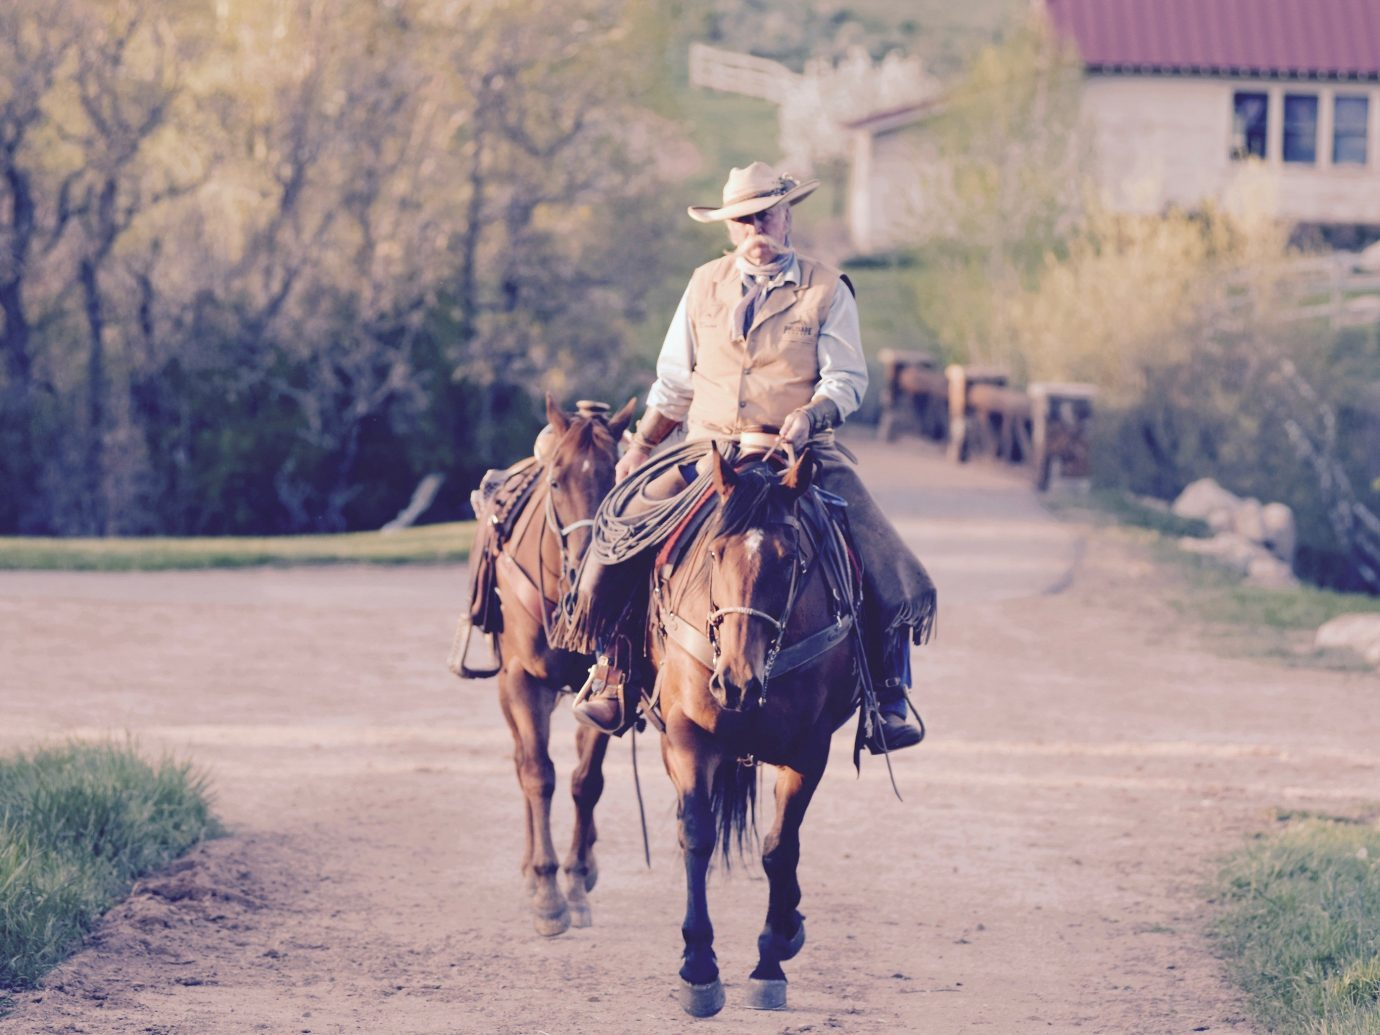 Outdoors + Adventure Trip Ideas Ranch western riding horse pack animal cowboy bridle rein horse like mammal rural area mustang horse stallion gaucho landscape tree mare ecoregion horse tack trail riding wrangler